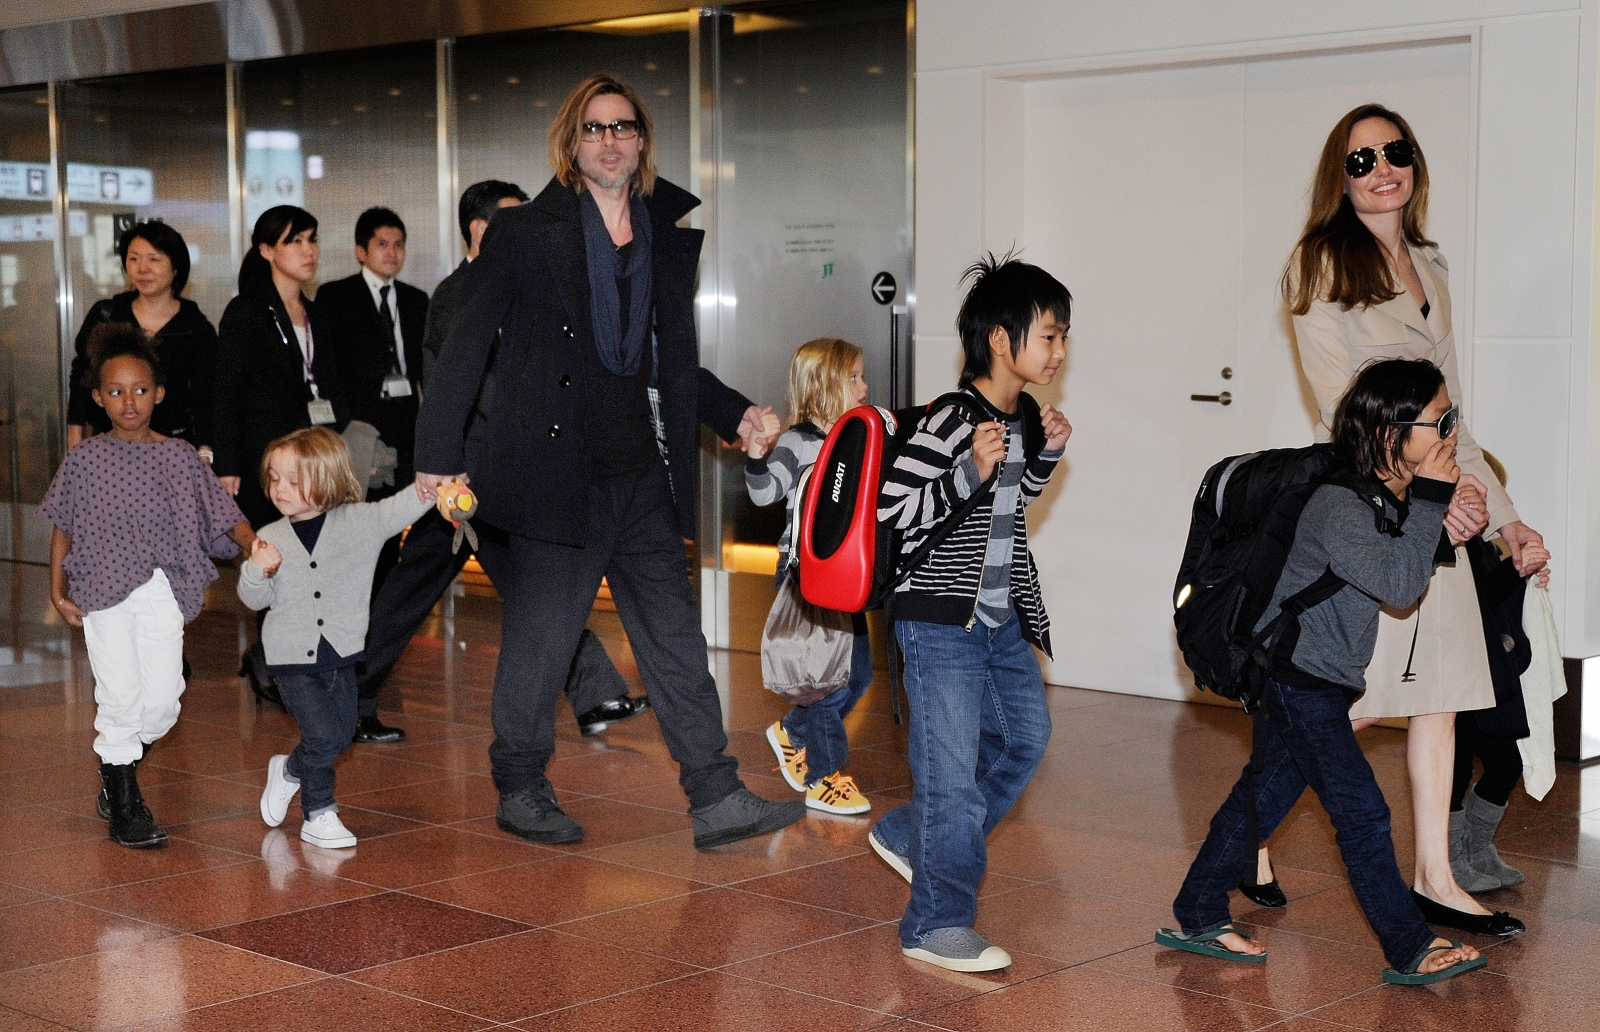 Angelina Jolie, Brad Pitt and family